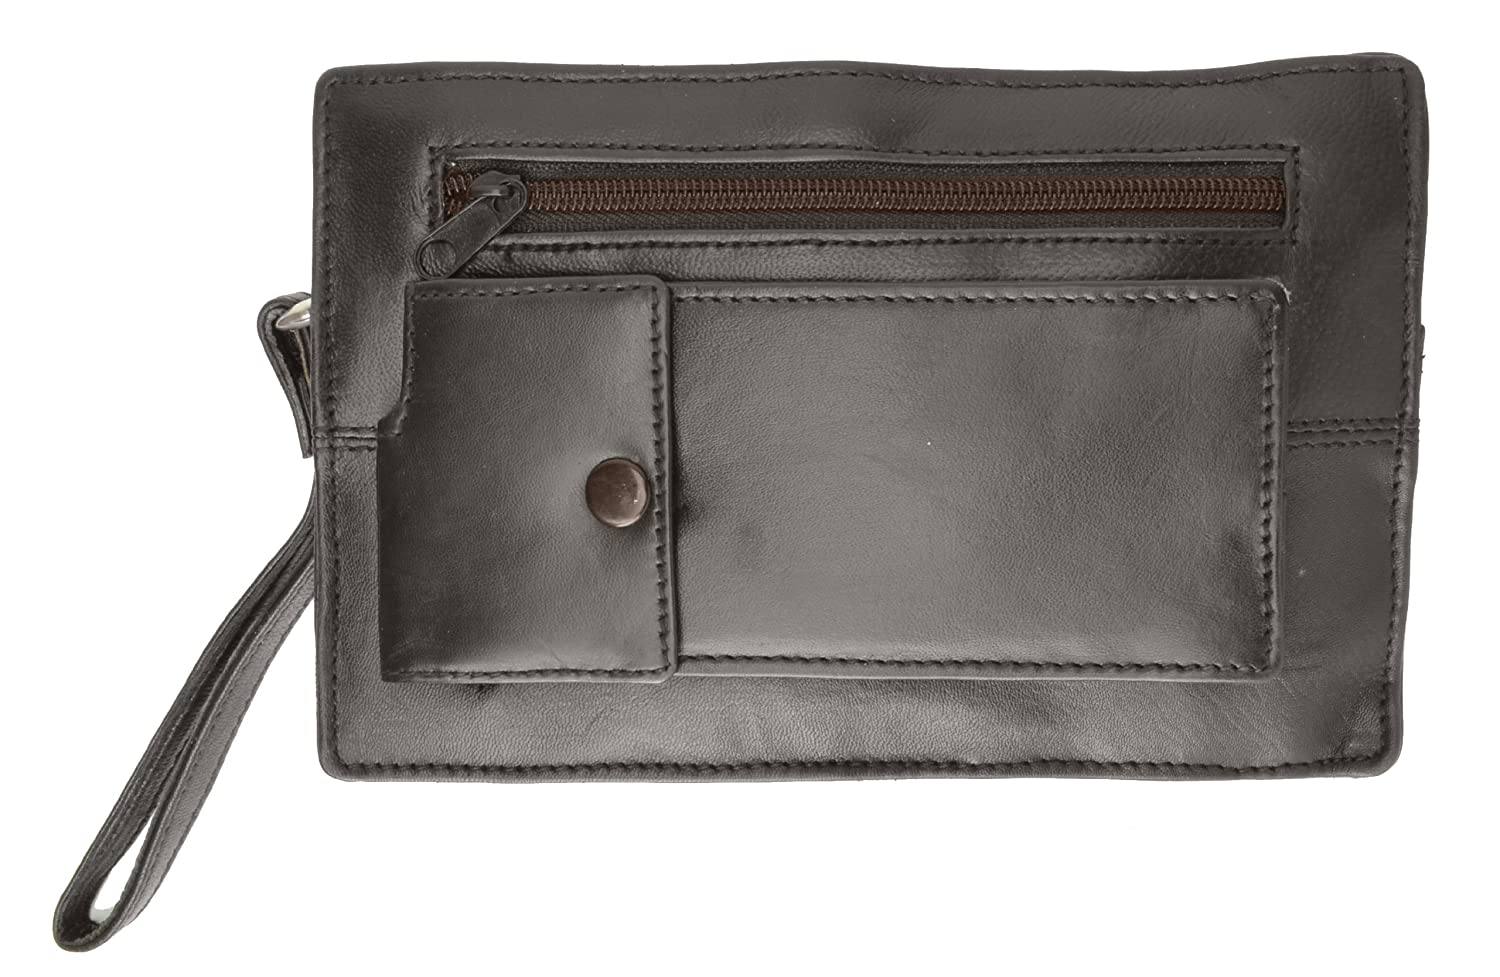 Genuine Soft Leather Mens Travel Purse with Wrist Strap by Marshal